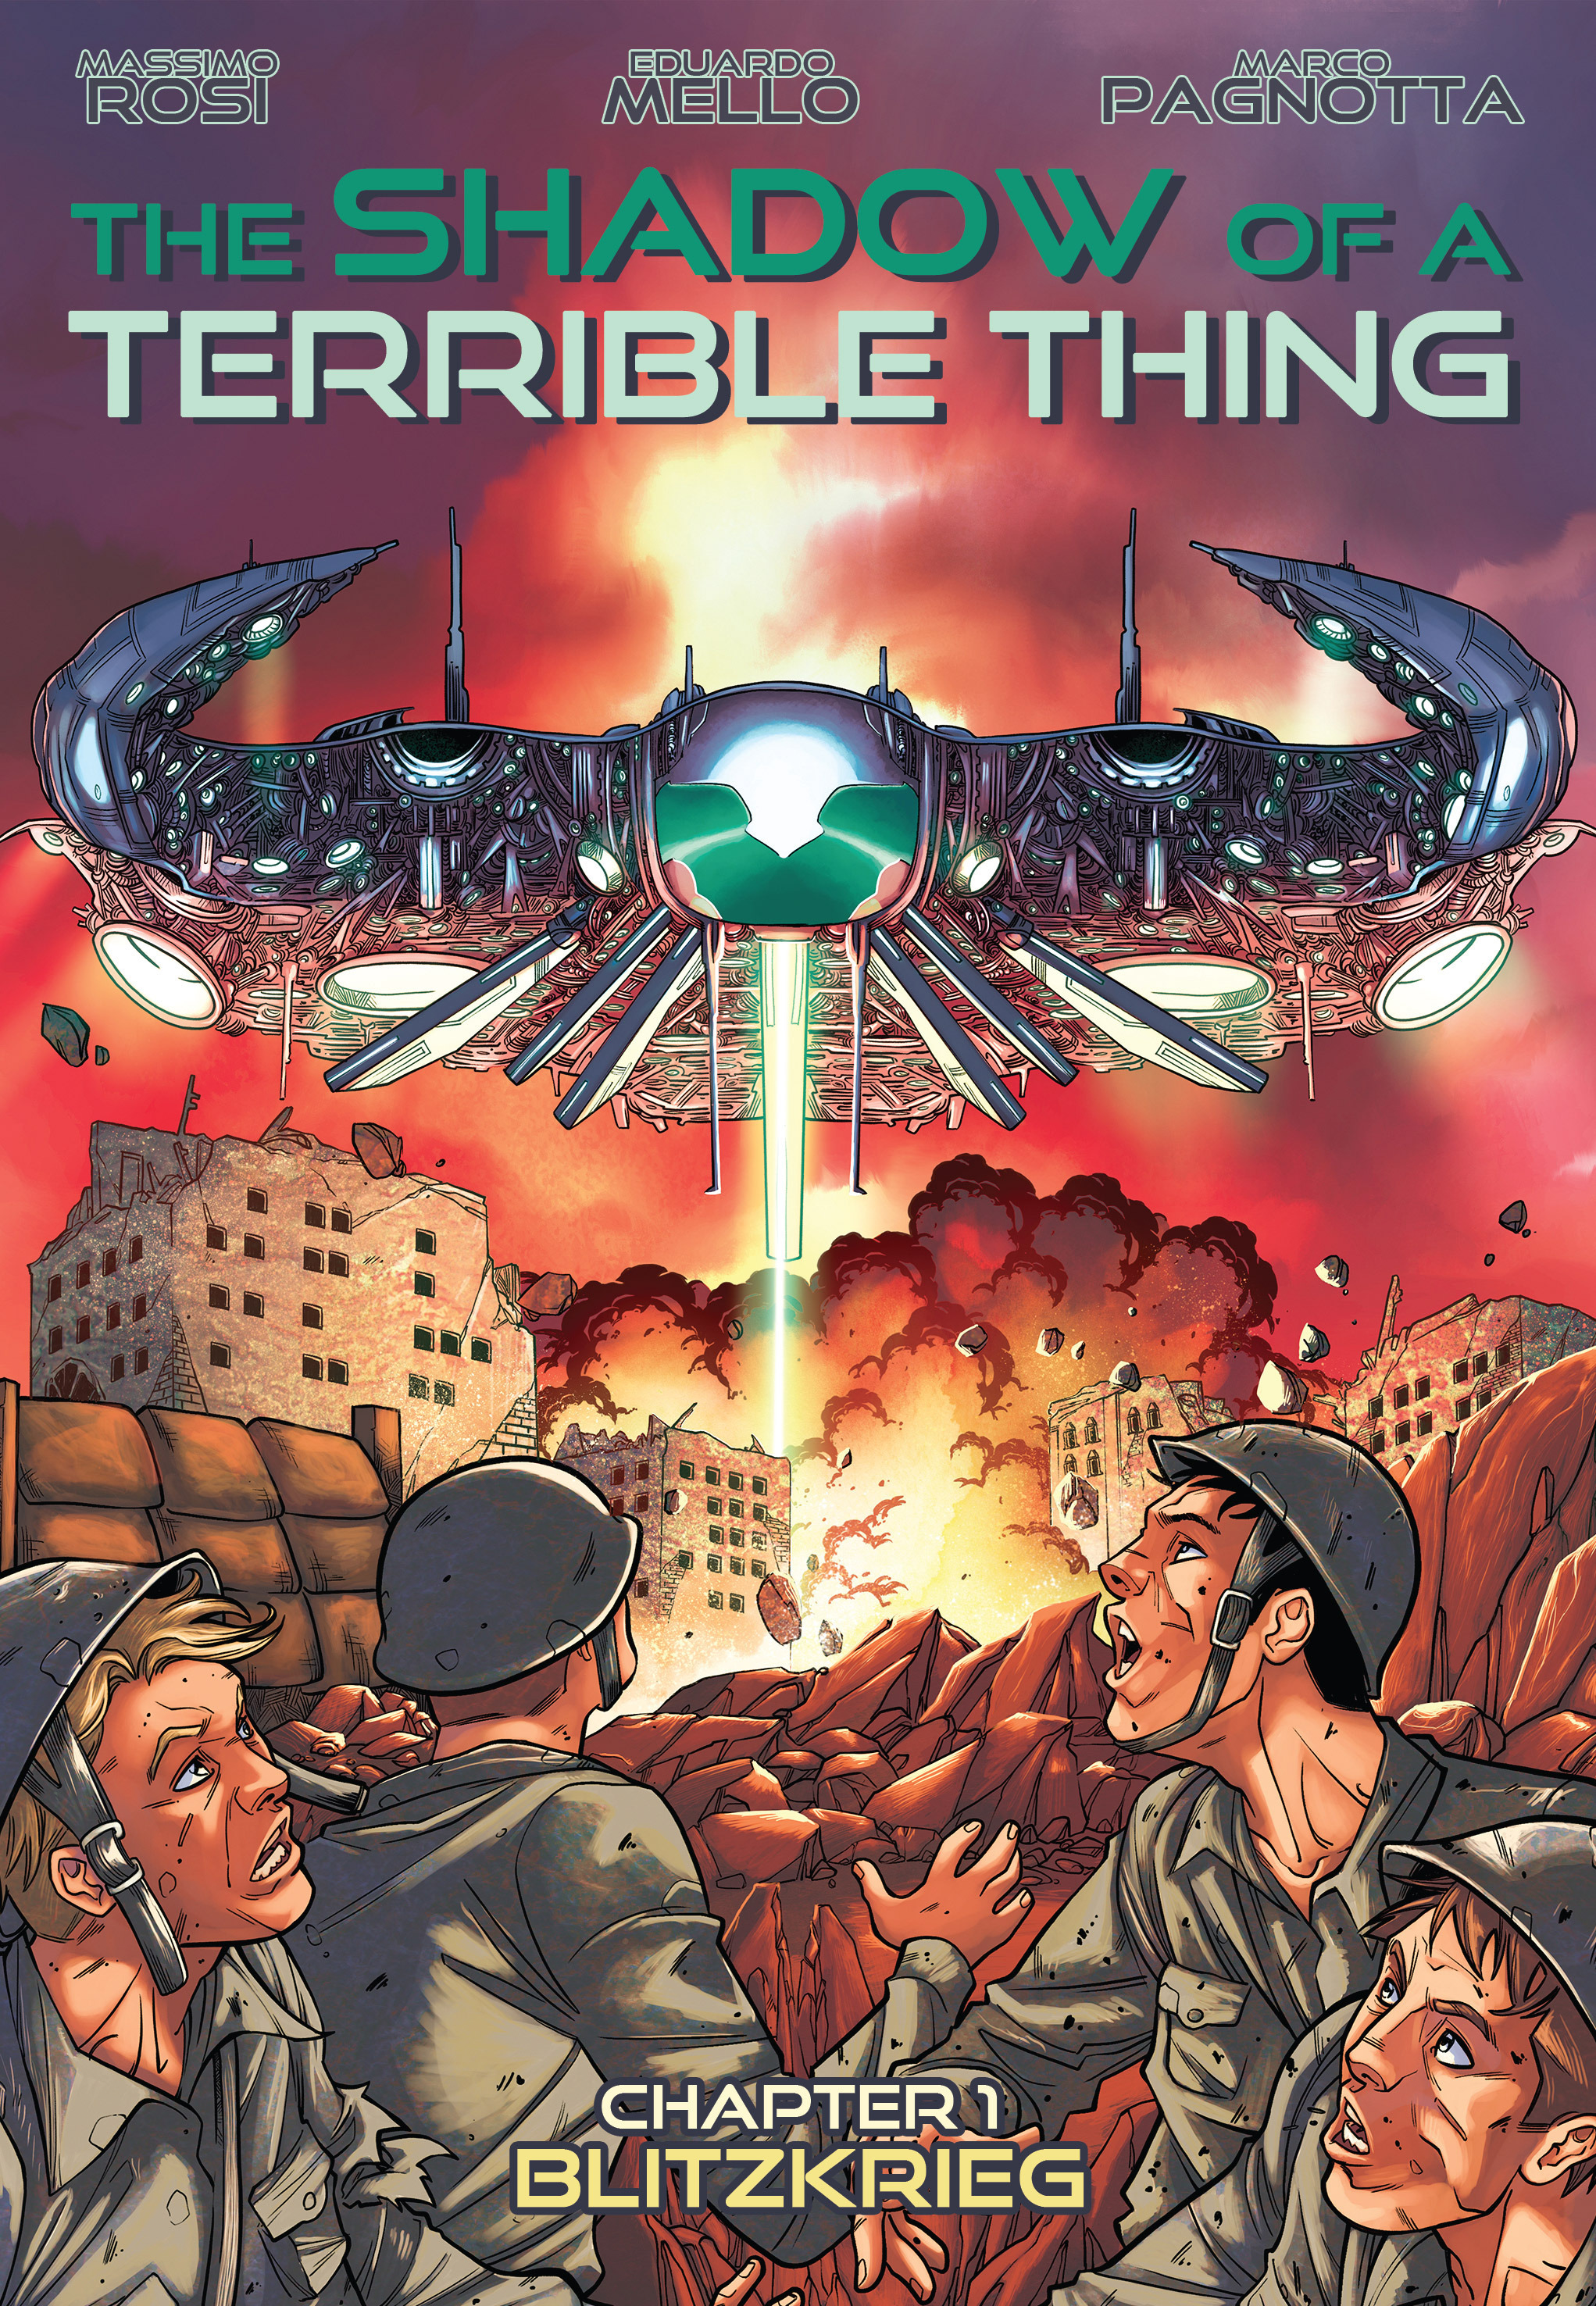 Read online The Shadow of a Terrible Thing comic -  Issue # TPB - 6